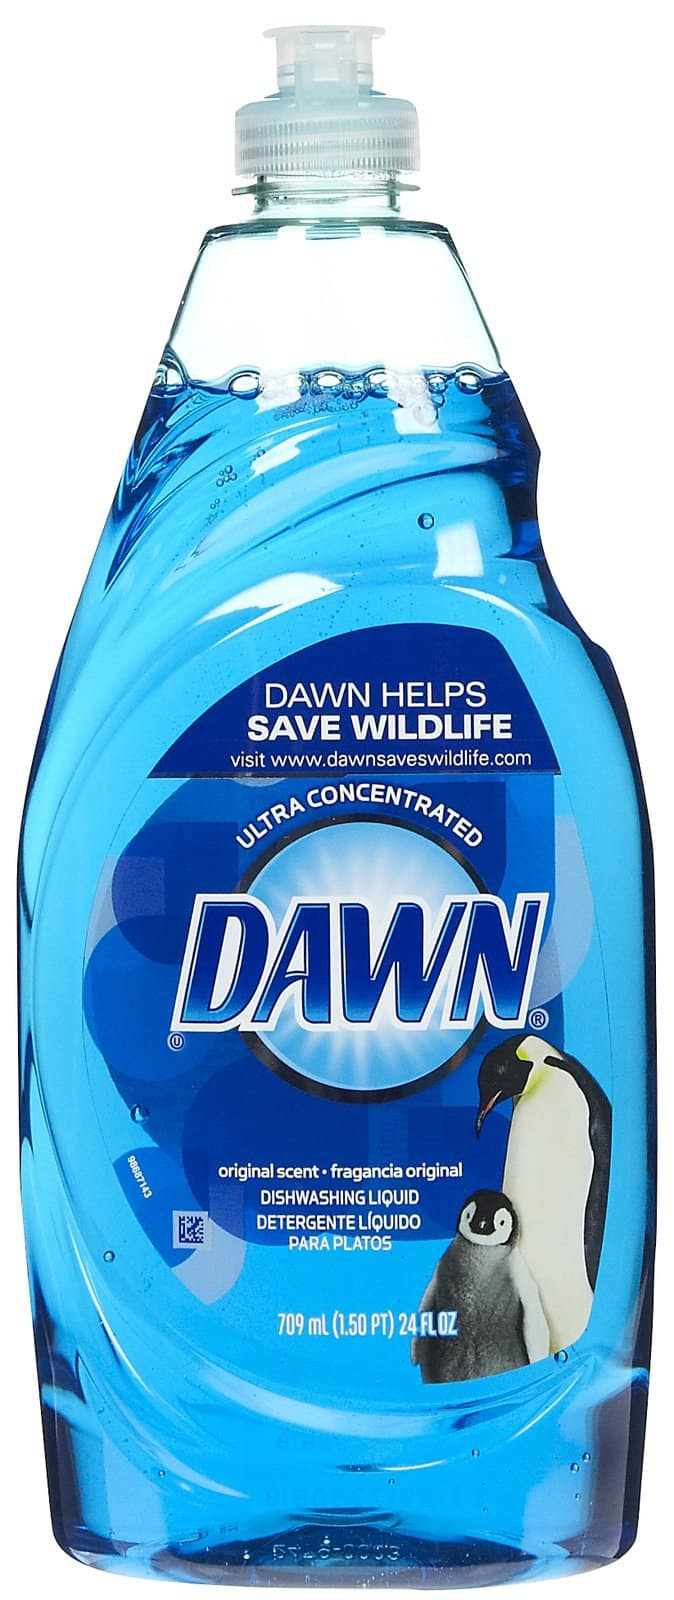 Dawn coupons